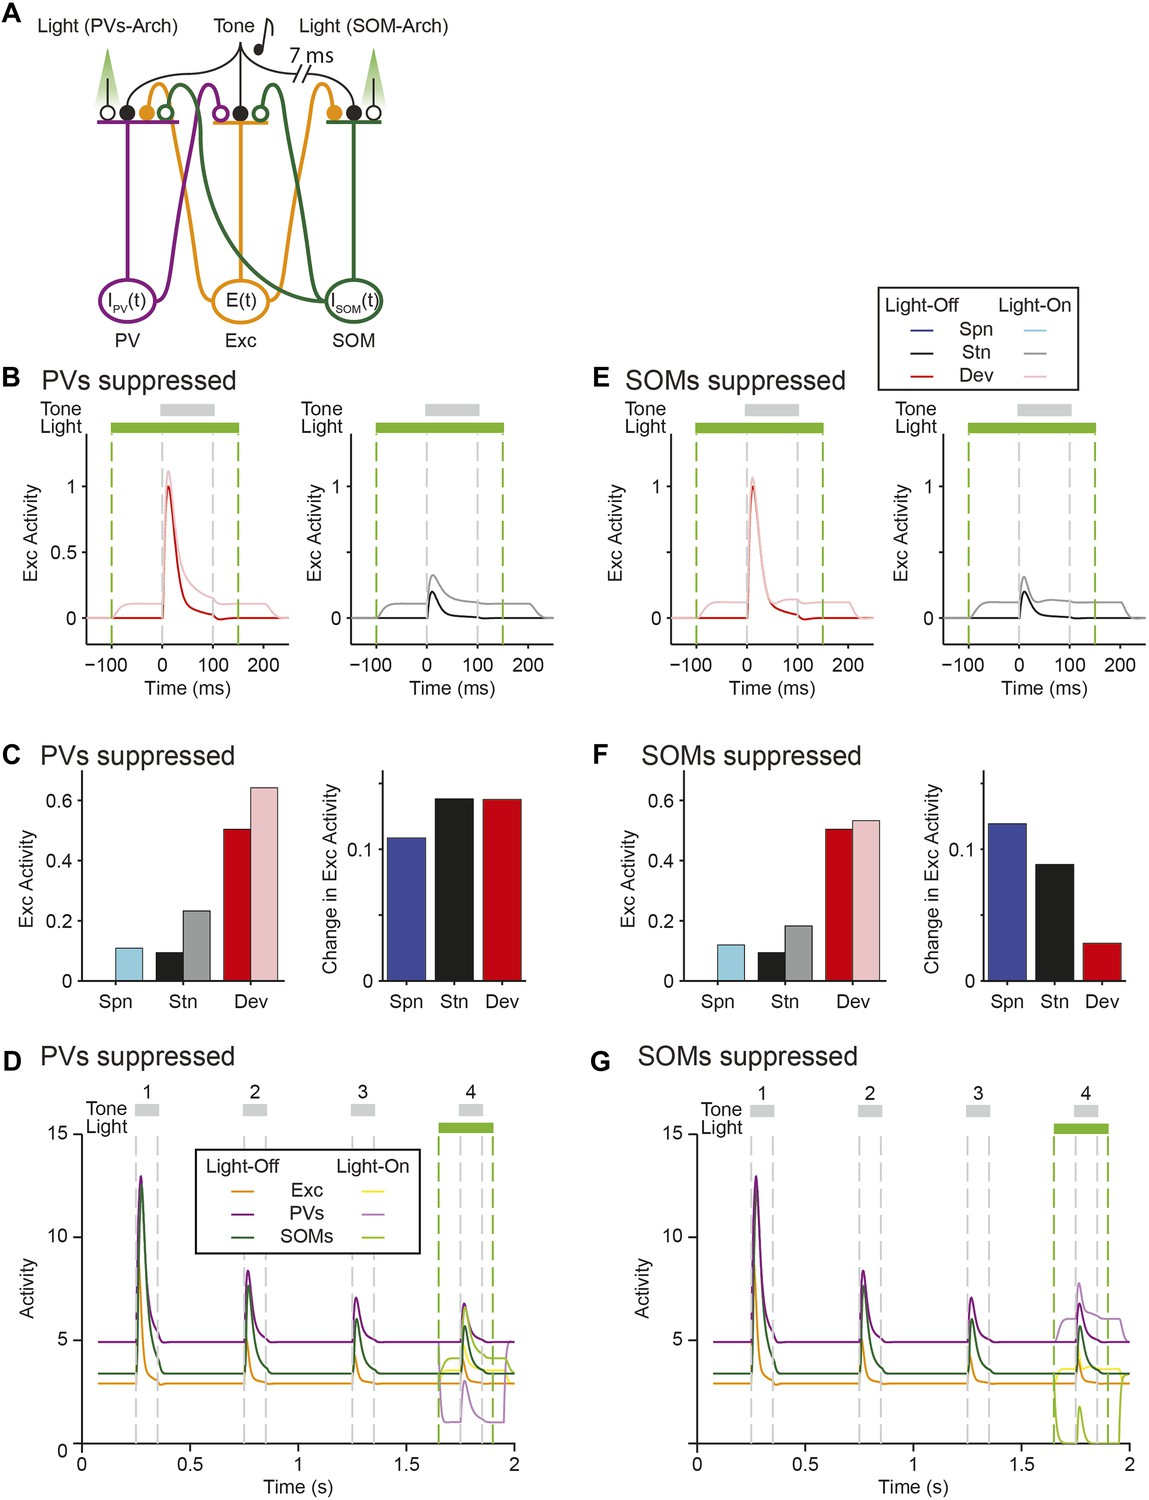 Complementary Control Of Sensory Adaptation By Two Types Cortical Image 1 1972 Mgb Gt Original Wiring Diagram Click To Enlarge Excitatoryinhibitory Model With Inhibitory Inputs From Som Pv Population Accounts For Differential Effects Pvs And Soms On Ssa In Putative Excitatory